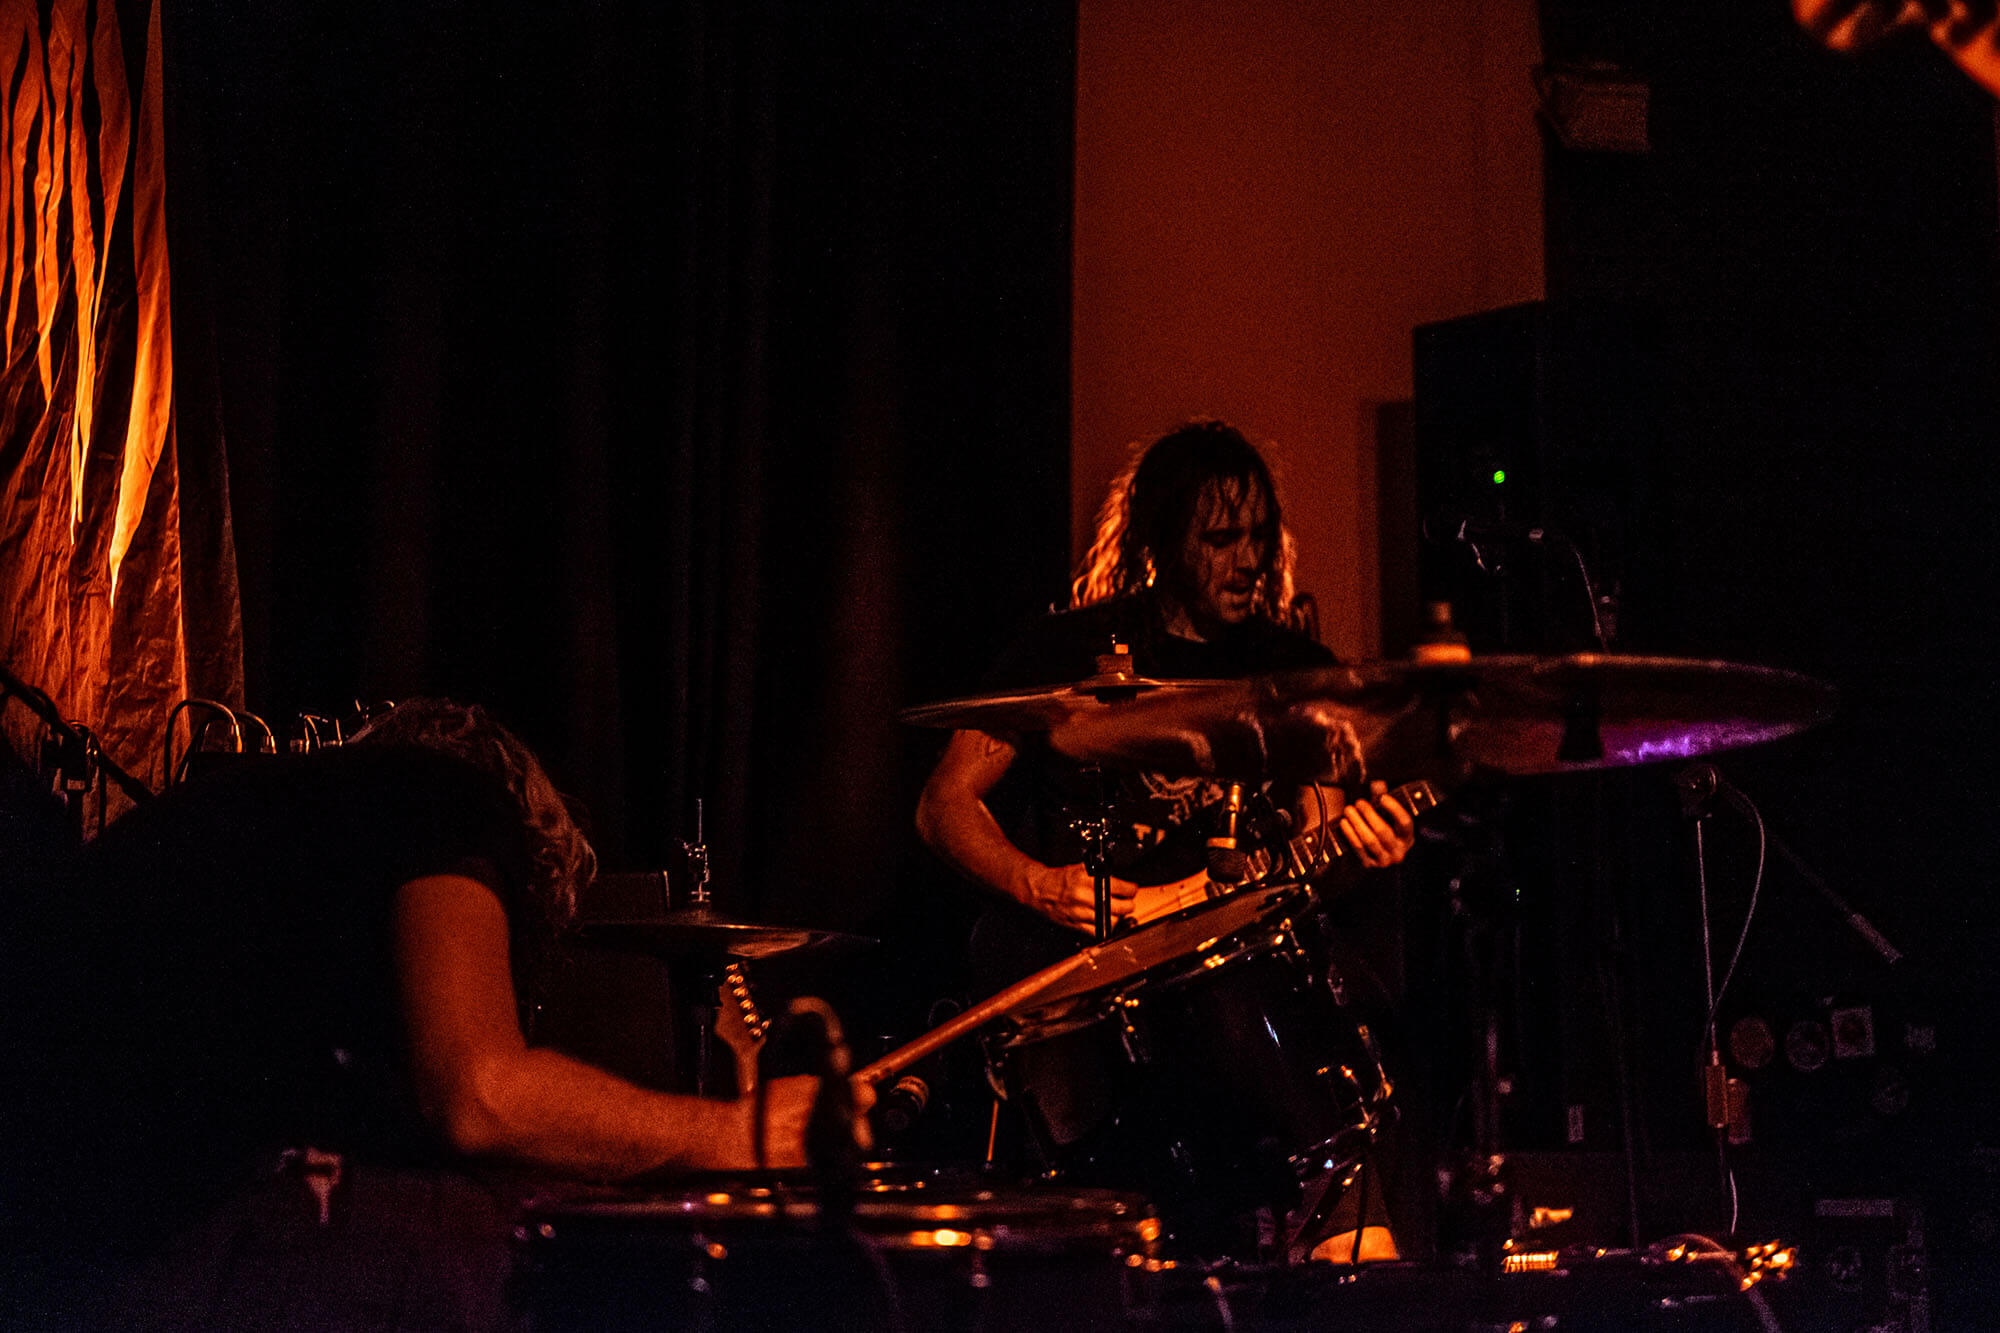 DZ-Deathrays-Freakout-about-bologna-ph-beatrice-belletti-10